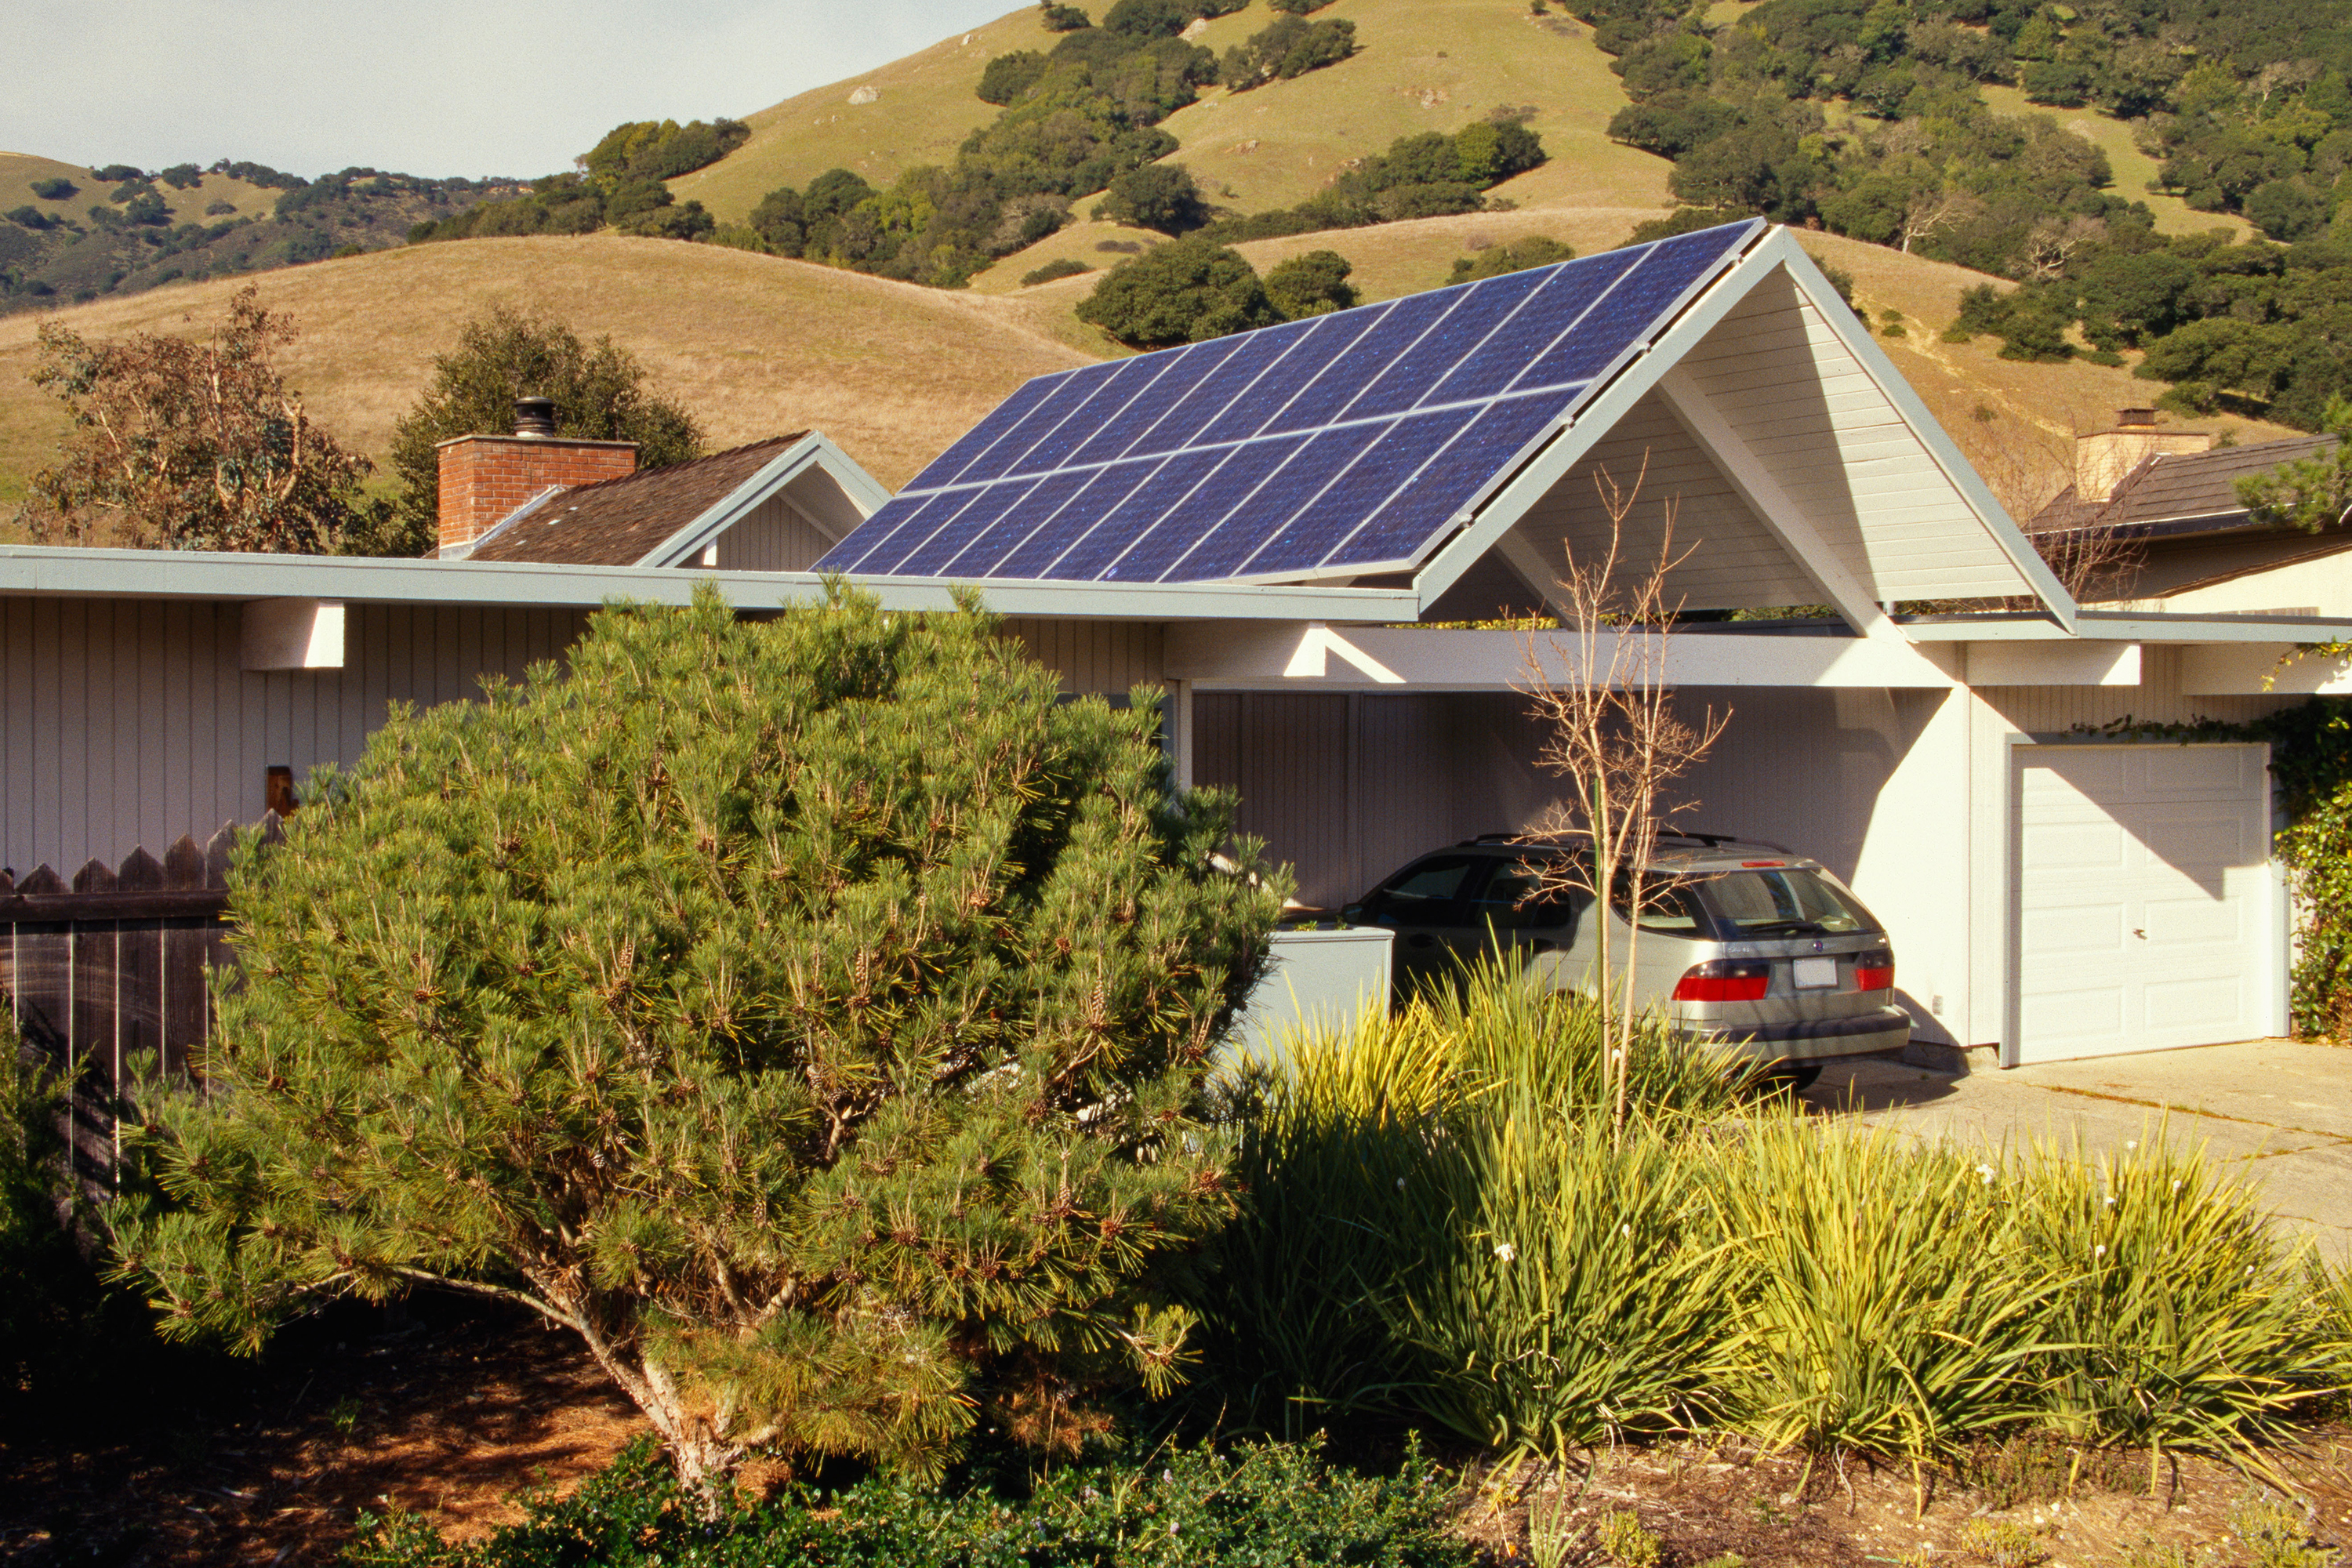 Solar panels on home in California.